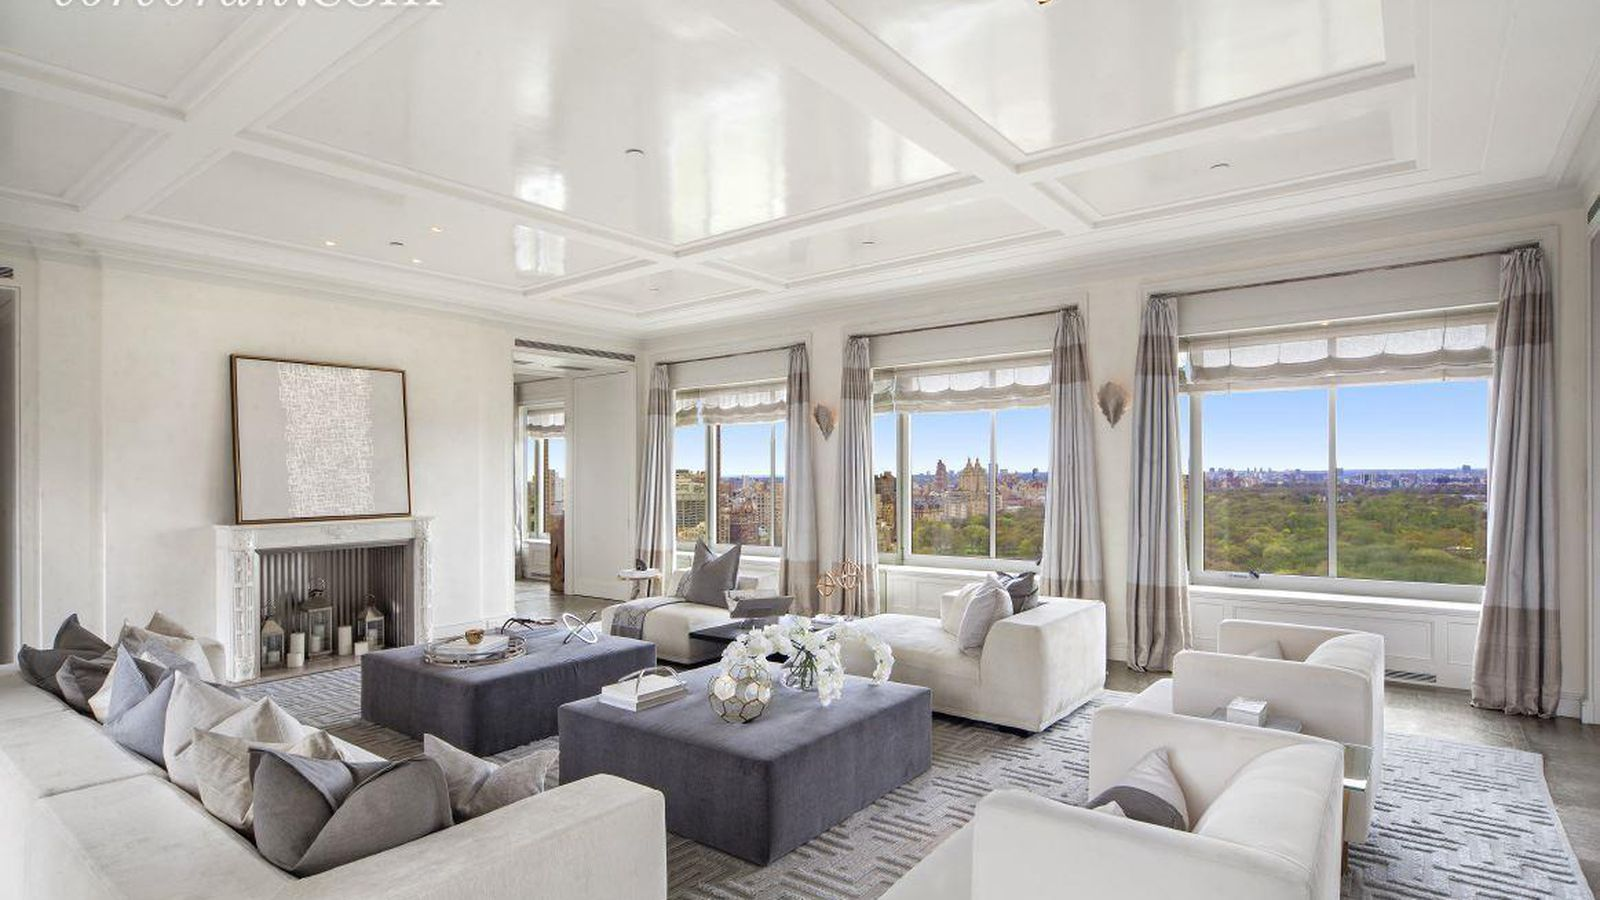 The Ritz S Versailles In The Sky Finally Finds A Buyer